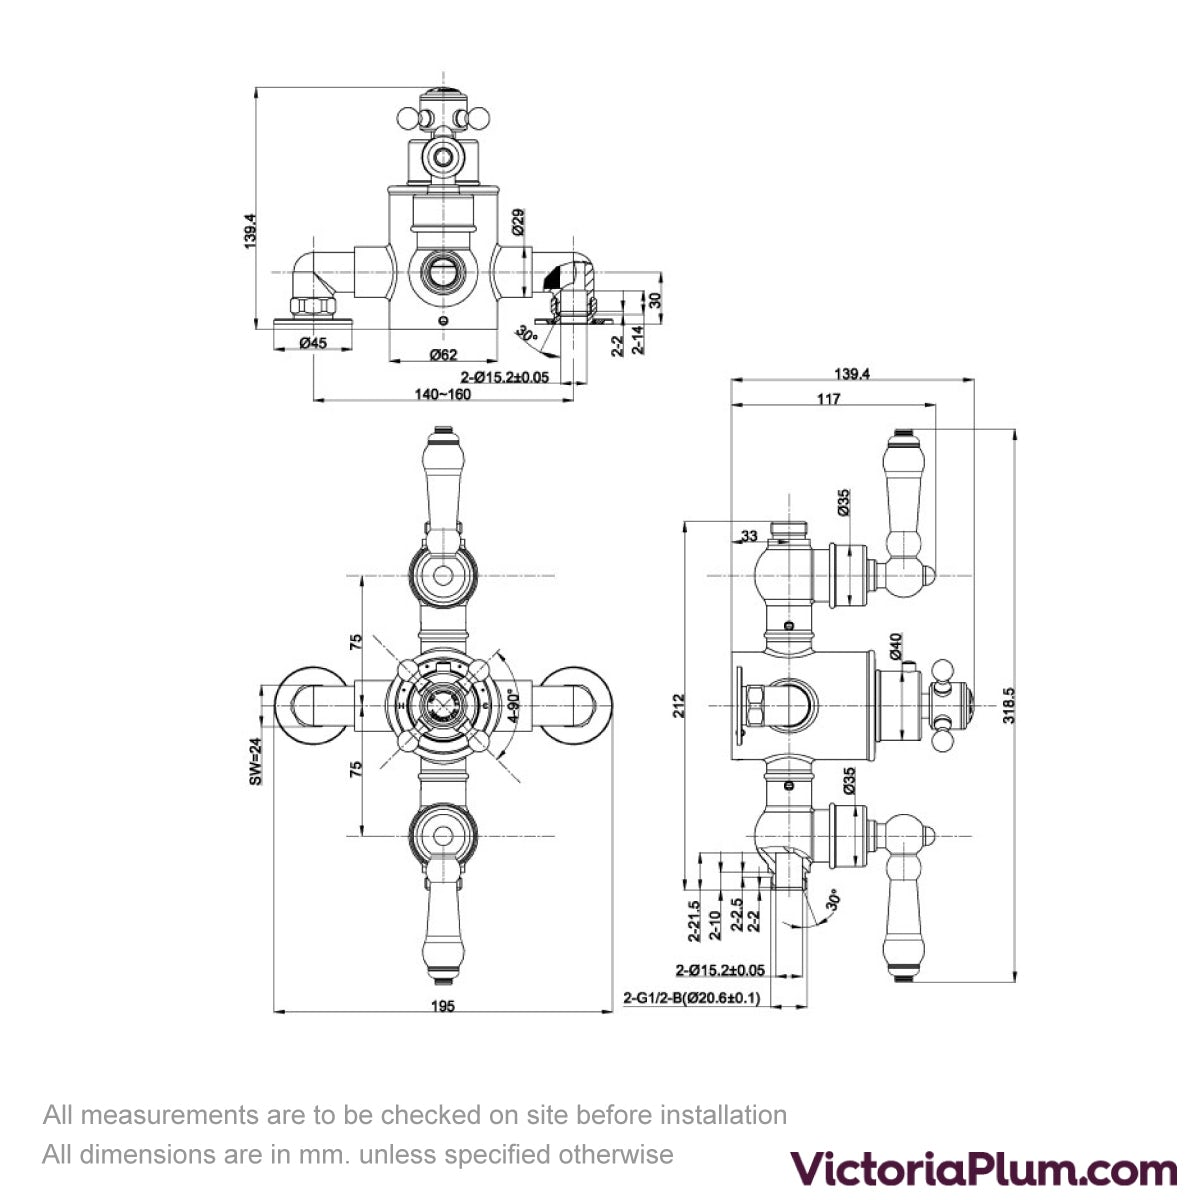 Dimensions for The Bath Co. Winchester rain can dual valve riser shower system